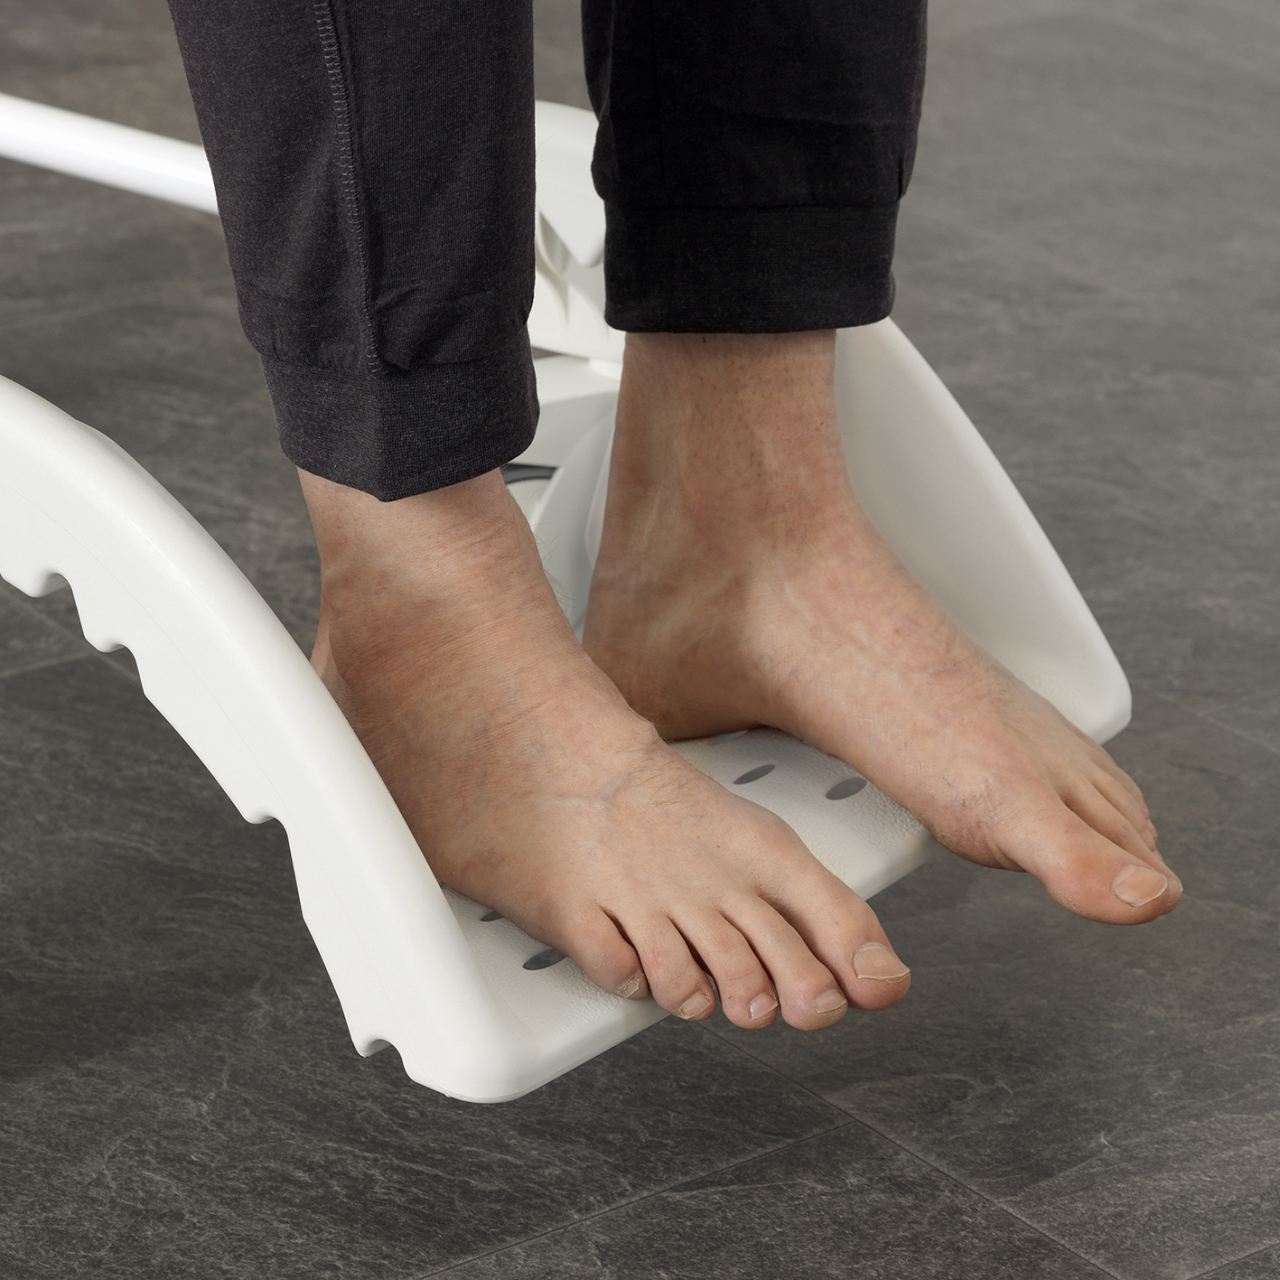 Foot support designed for feet